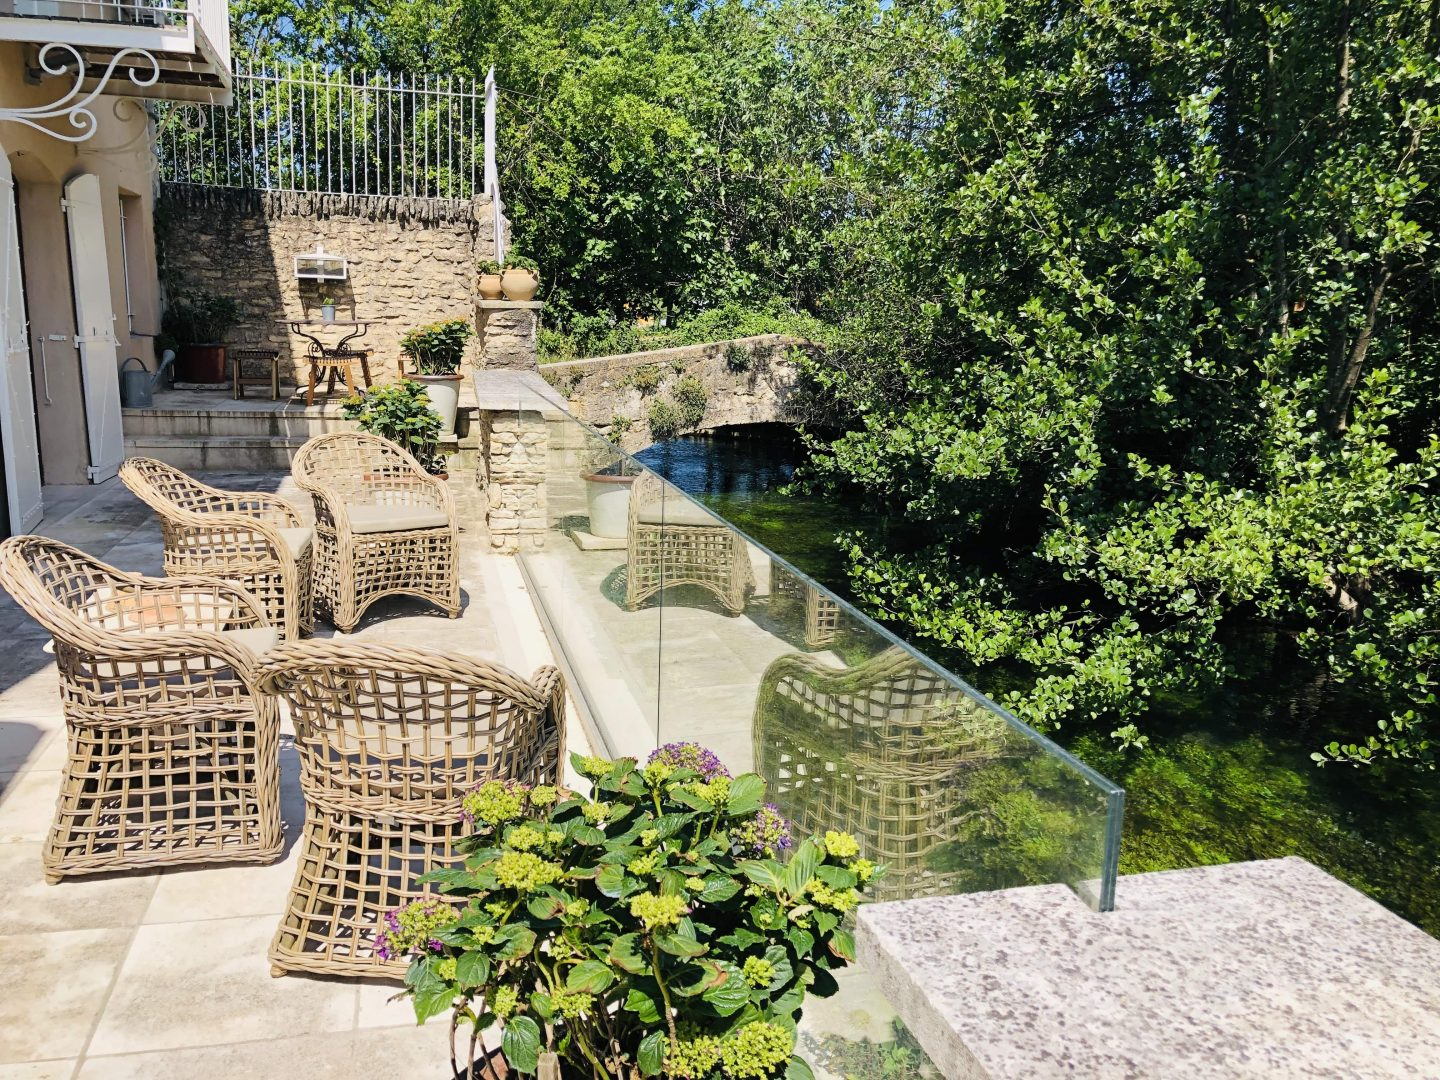 Luxury villa, Isle sur Sorgue, river views, pool, tennis court, boules, sauna, jacuzzi, gym, sleeps 8